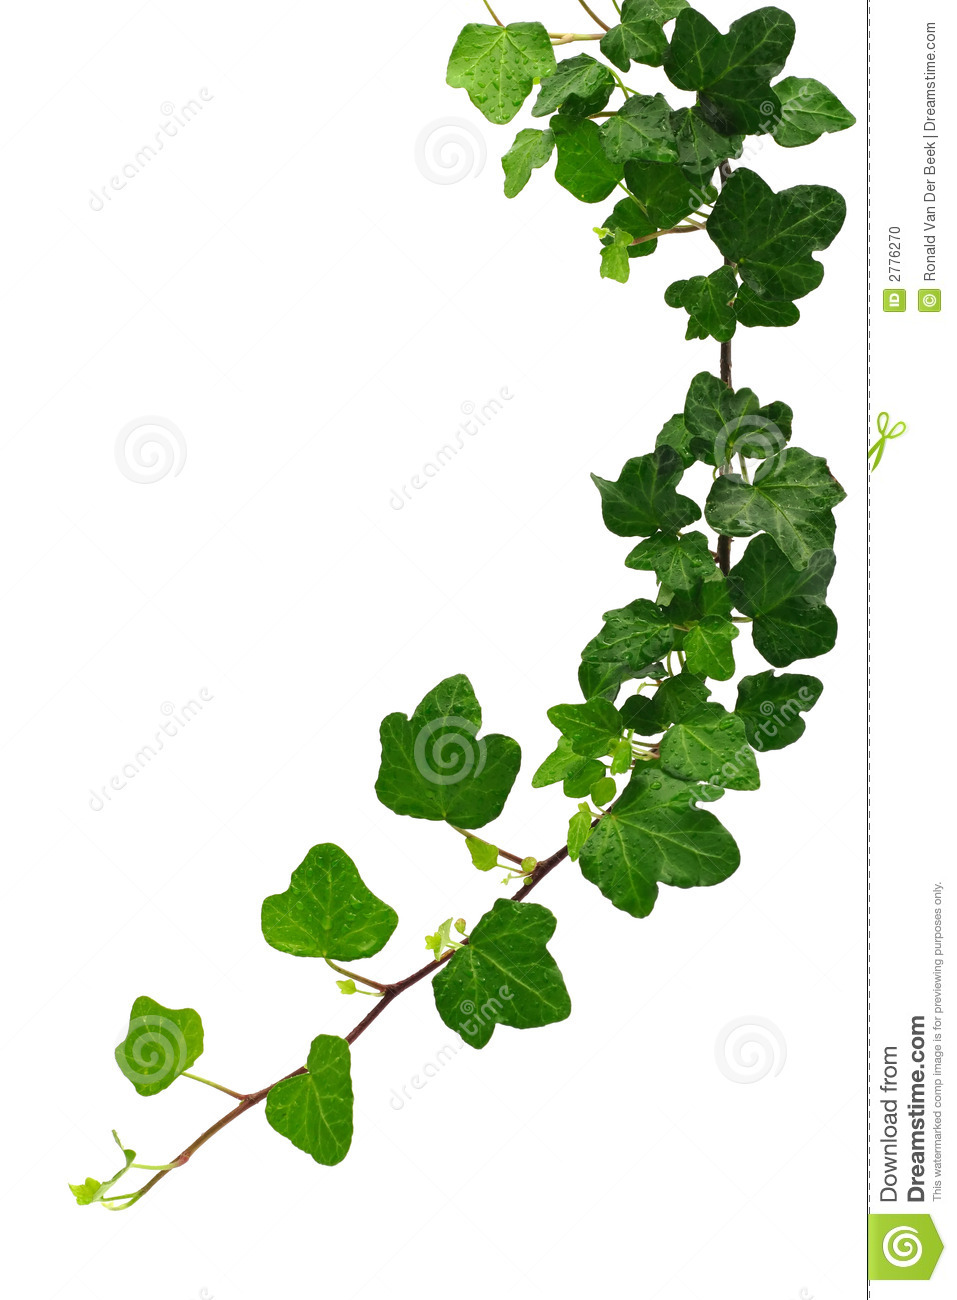 Green ivy isolated on white background.